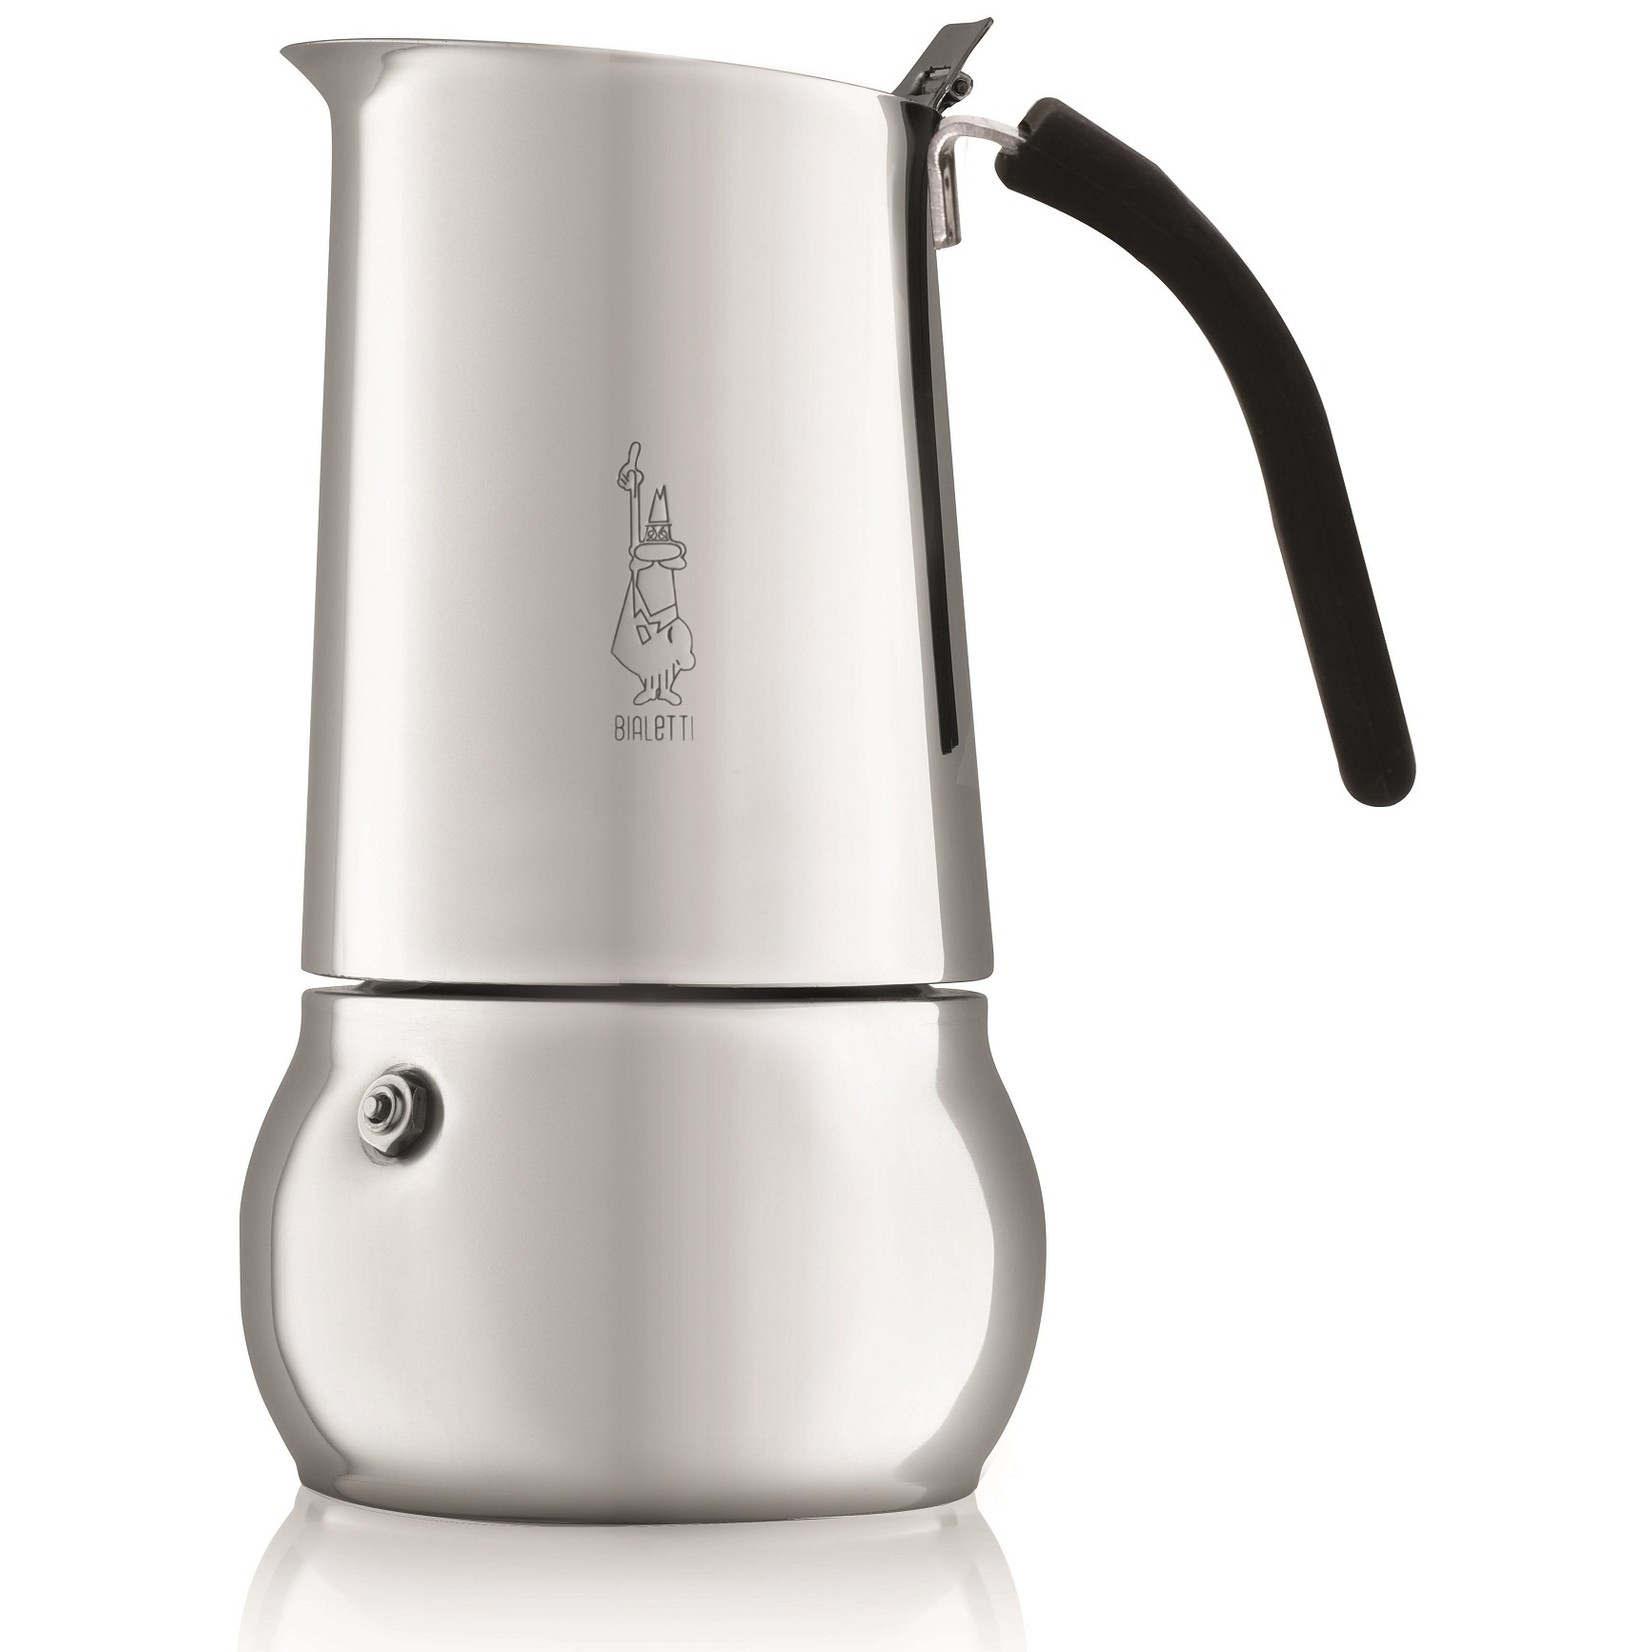 Bialetti Bialetti Kitty 4 kops percolator